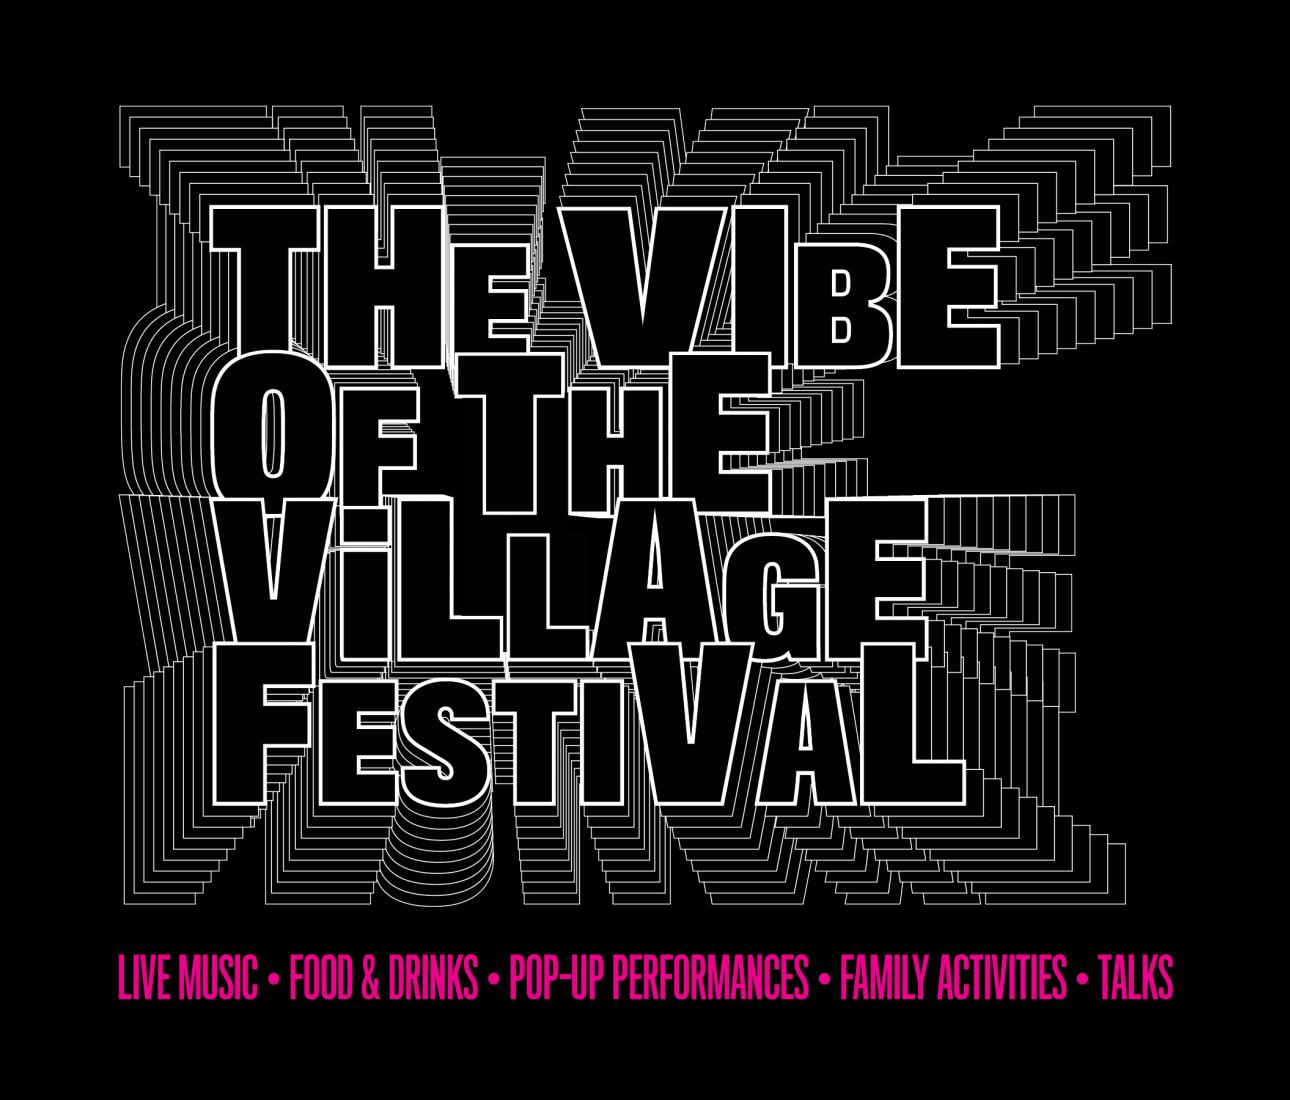 The Vibe of the Village Festival